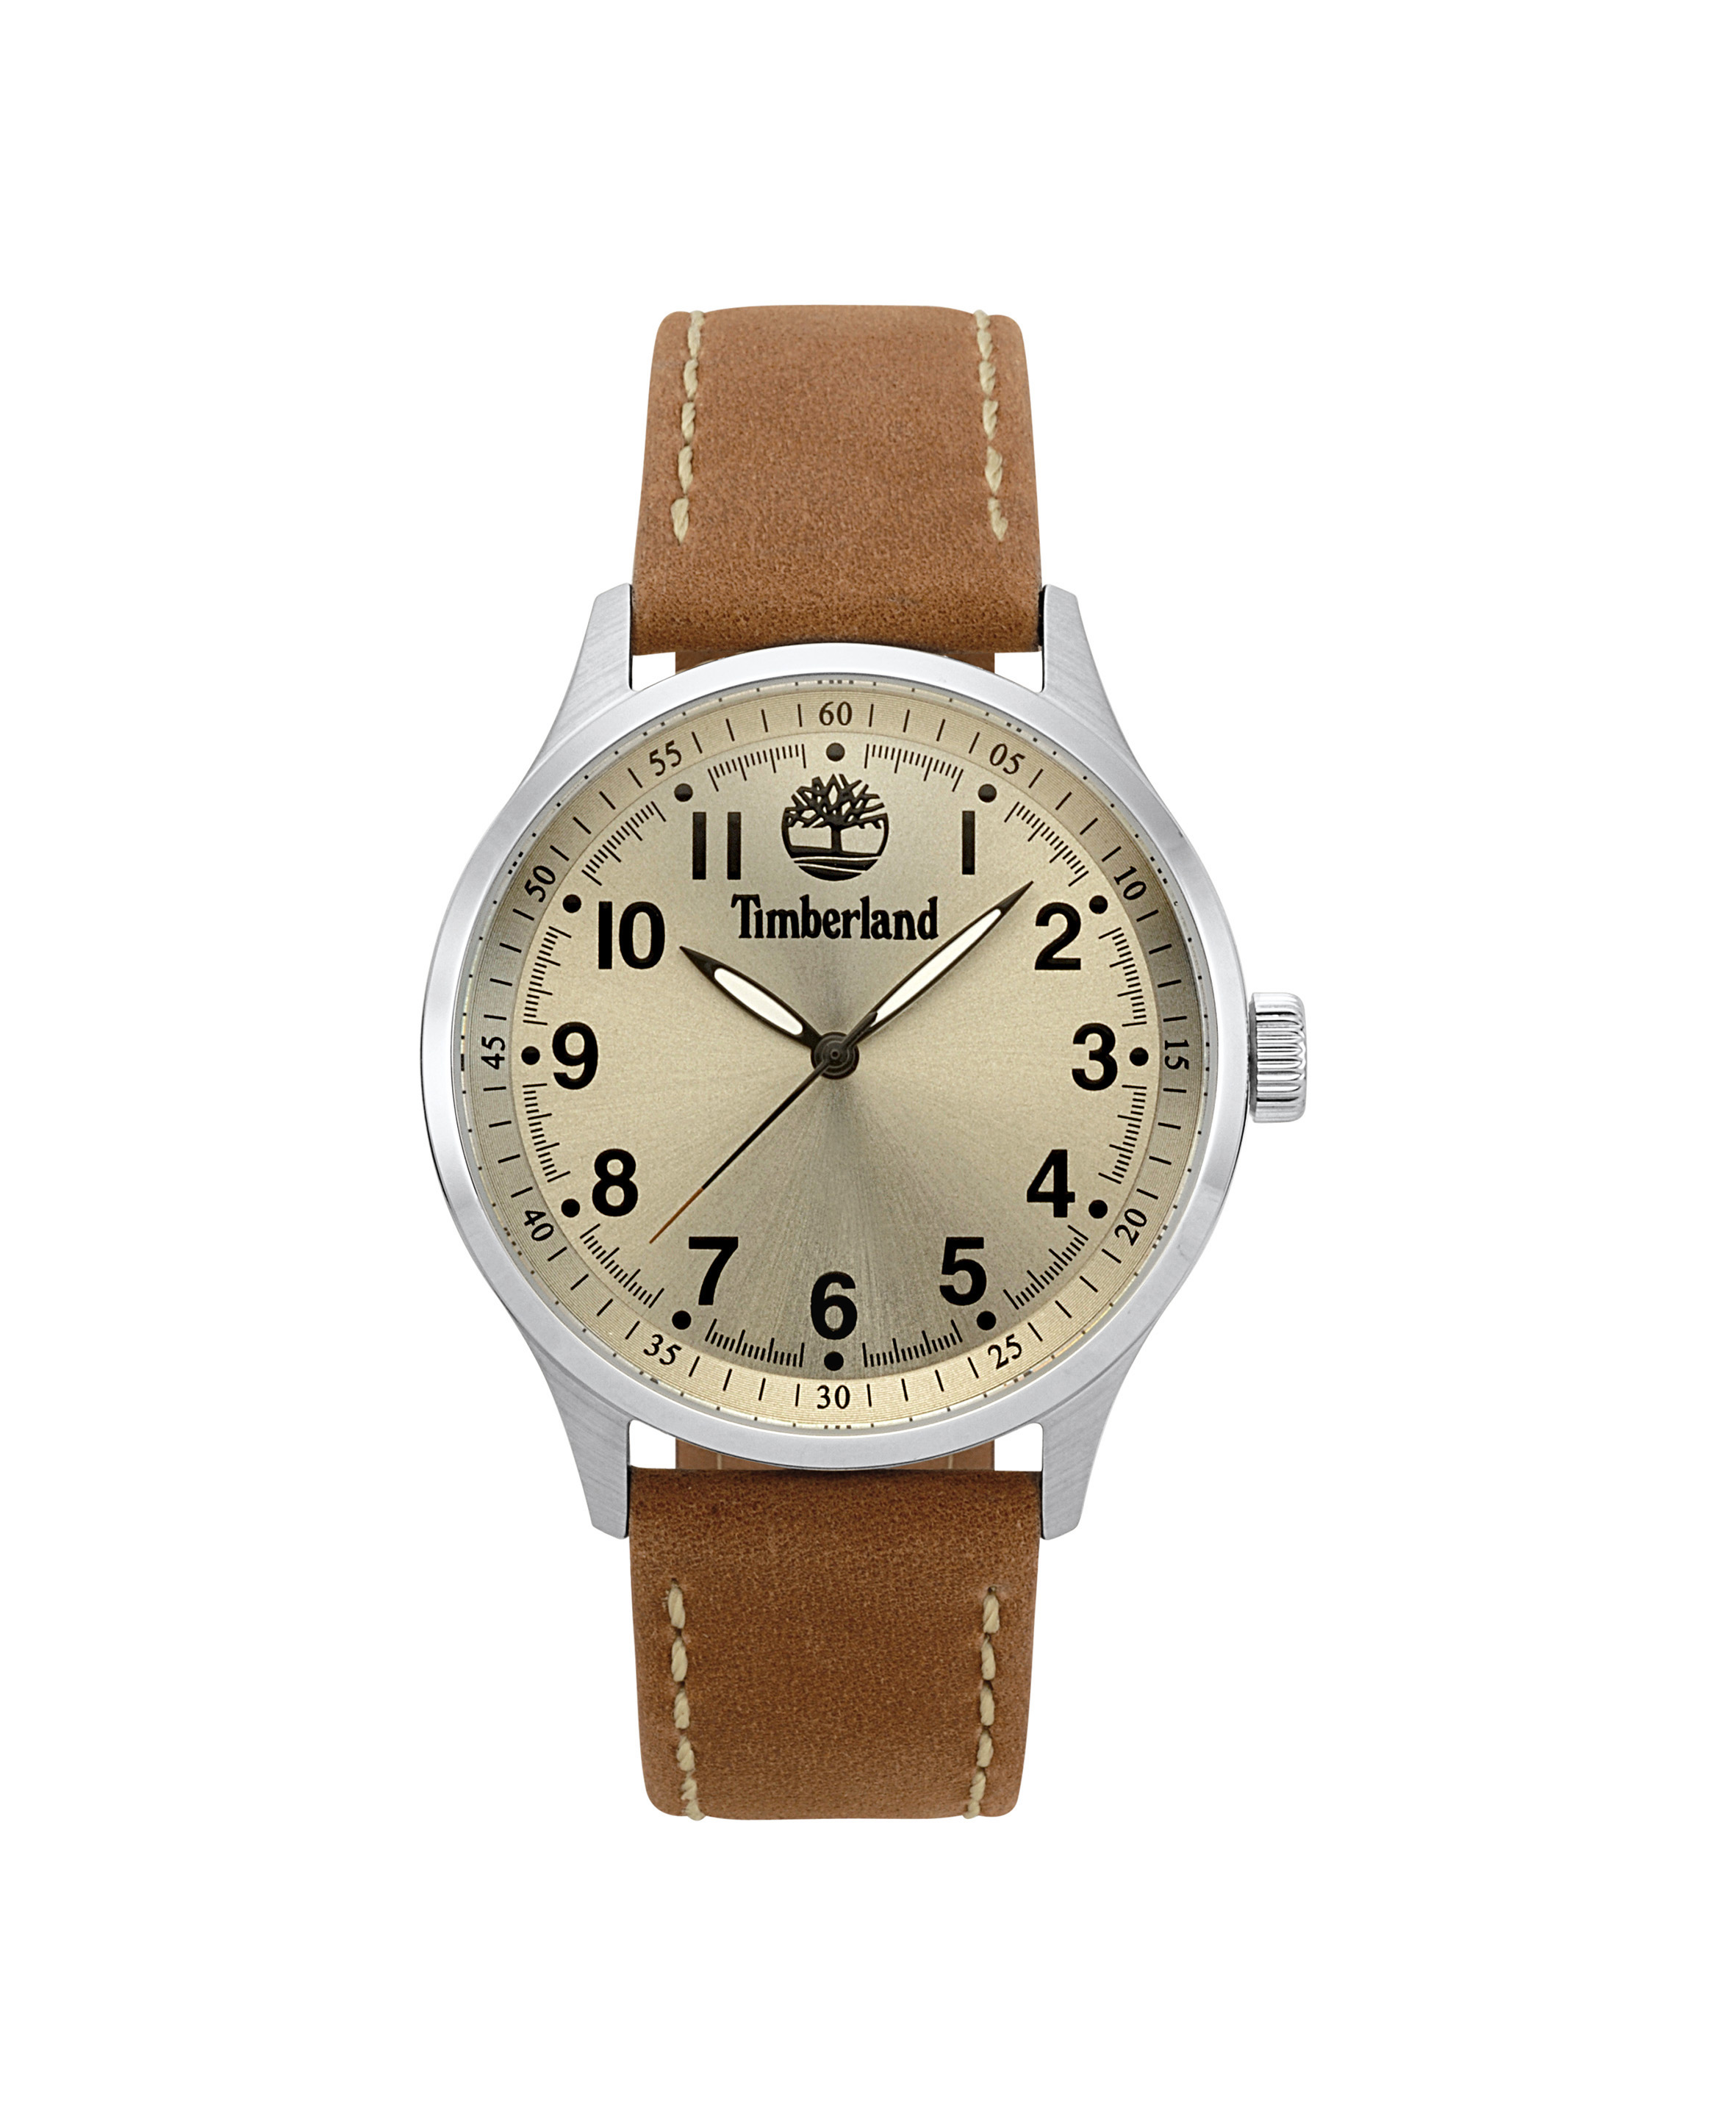 Procesando preposición Rechazar  Timberland Watches & Eyewear for Men & Women | Rivoli